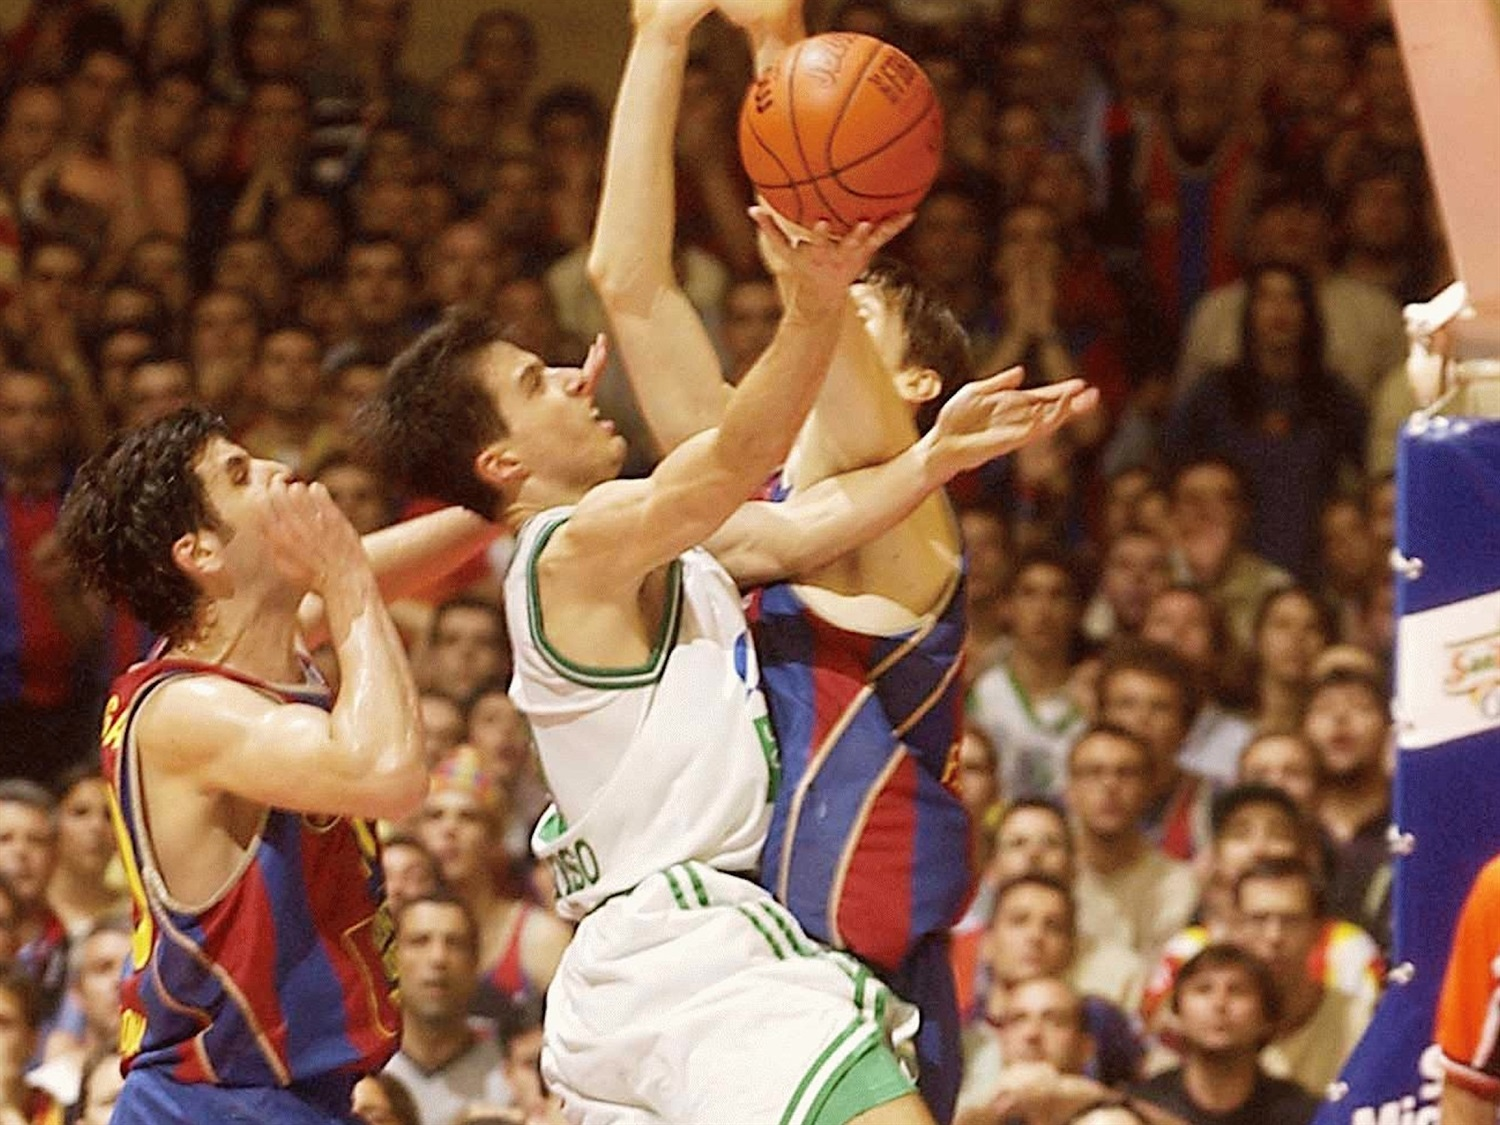 Massimo Bulleri - Benetton Basket - Final Four Barcelona 2003 - EB02